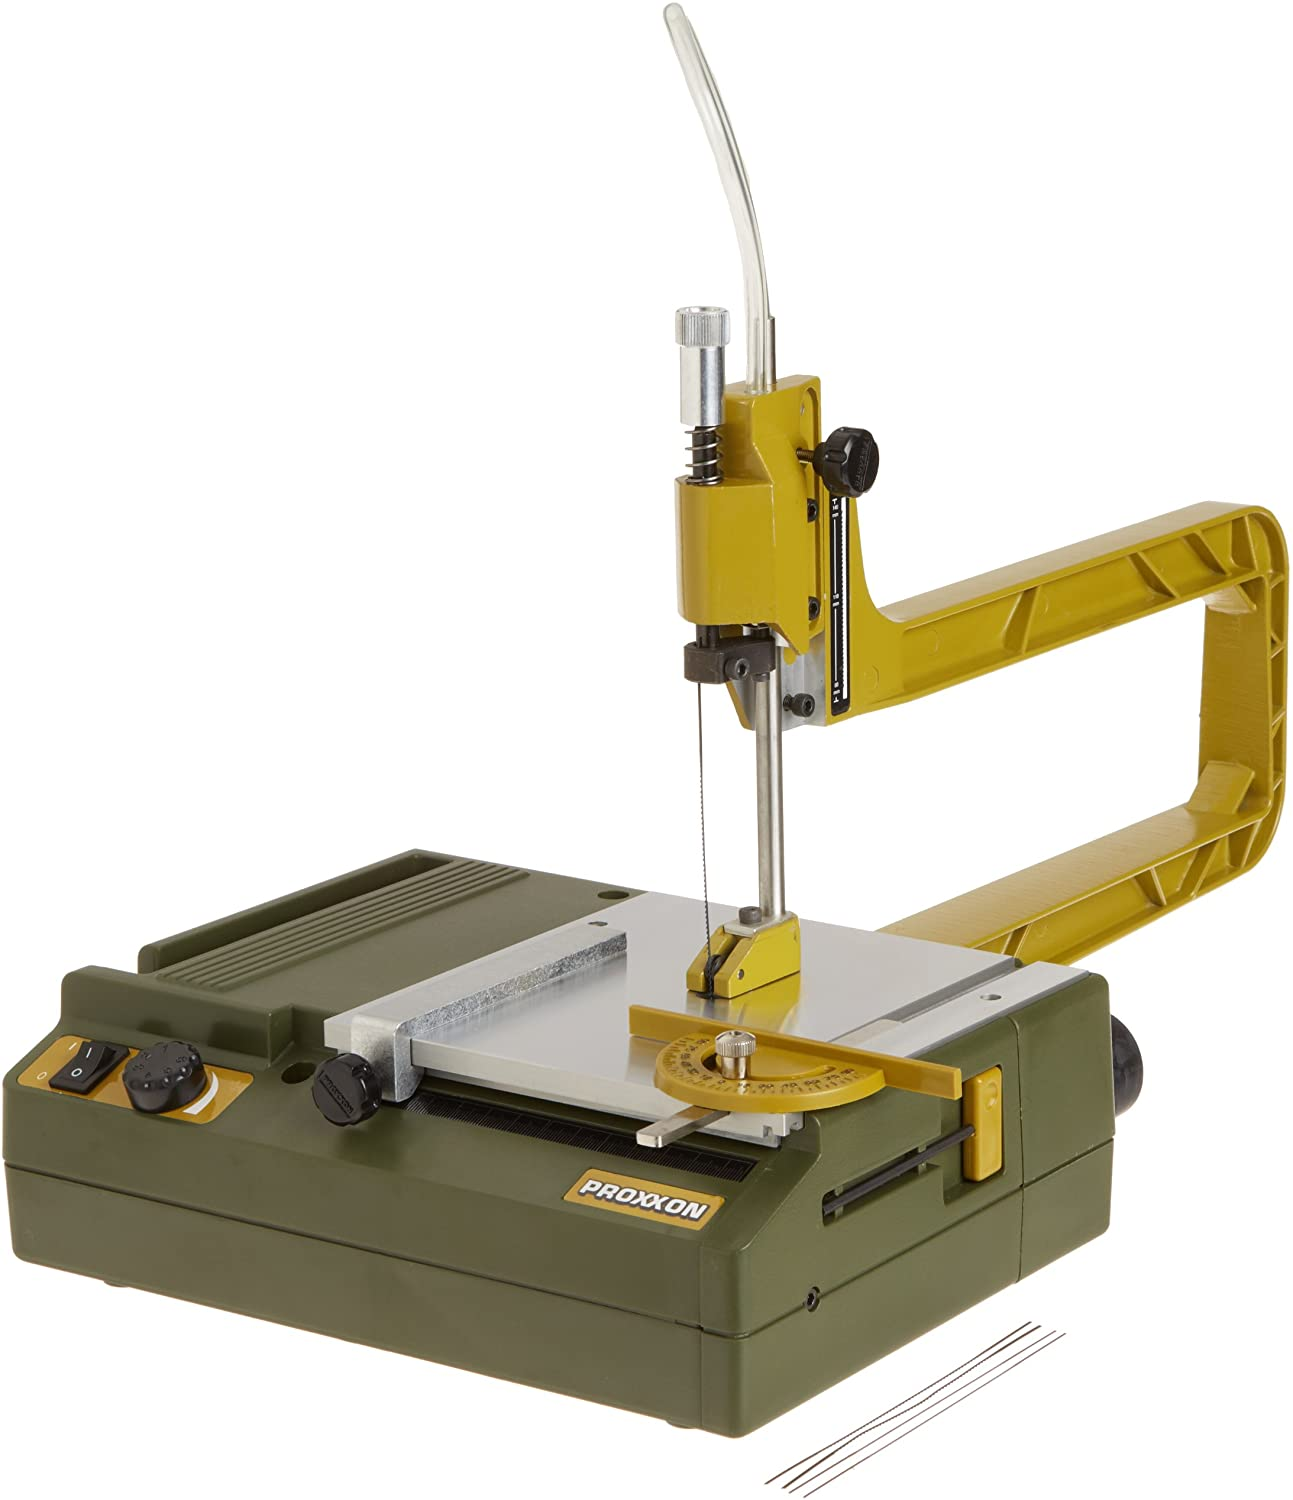 Proxxon 37088 Scroll Saw – Best Low-Budget